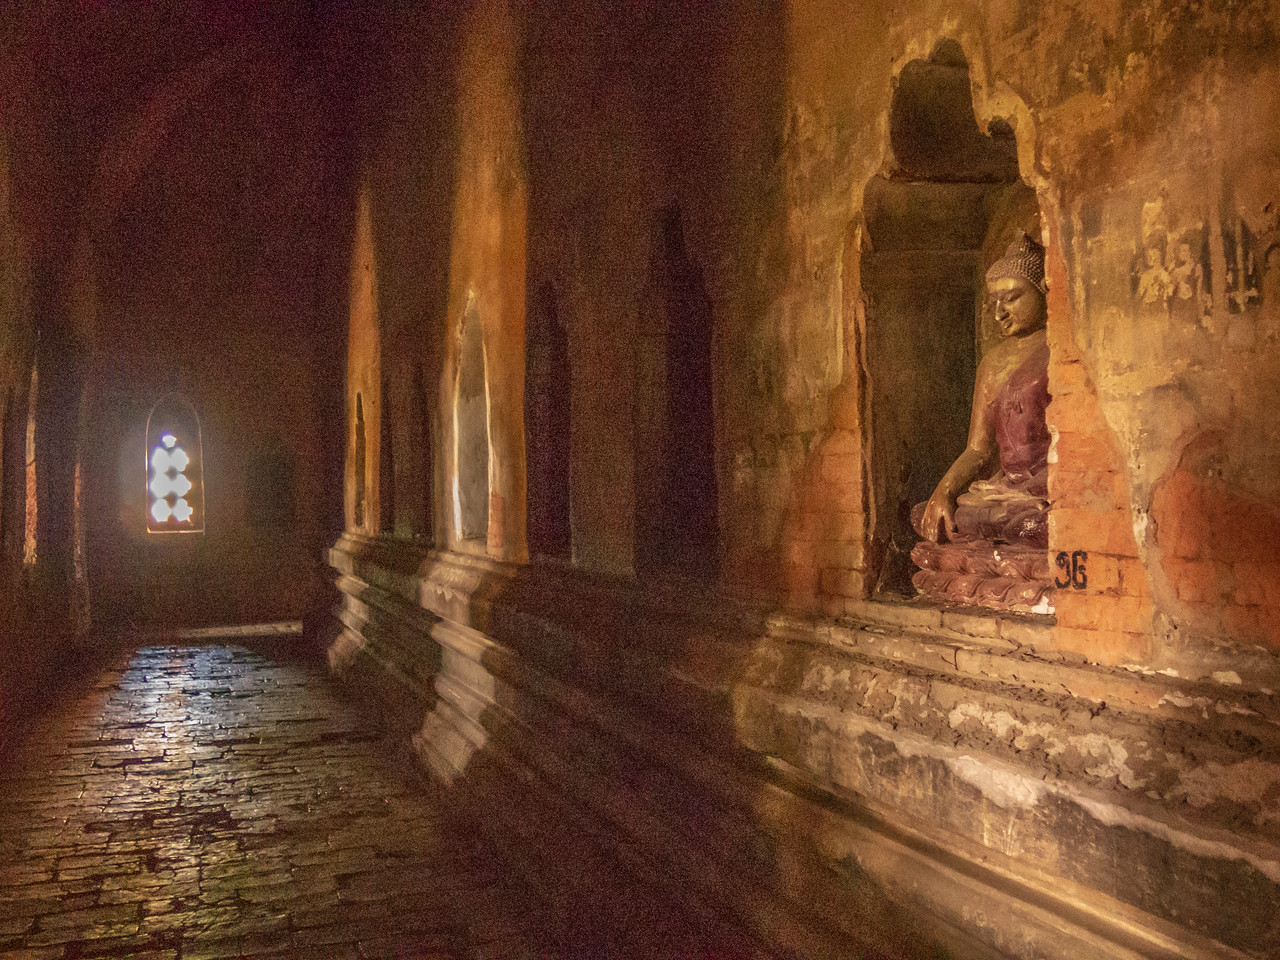 Interior of a Temple of Bagan